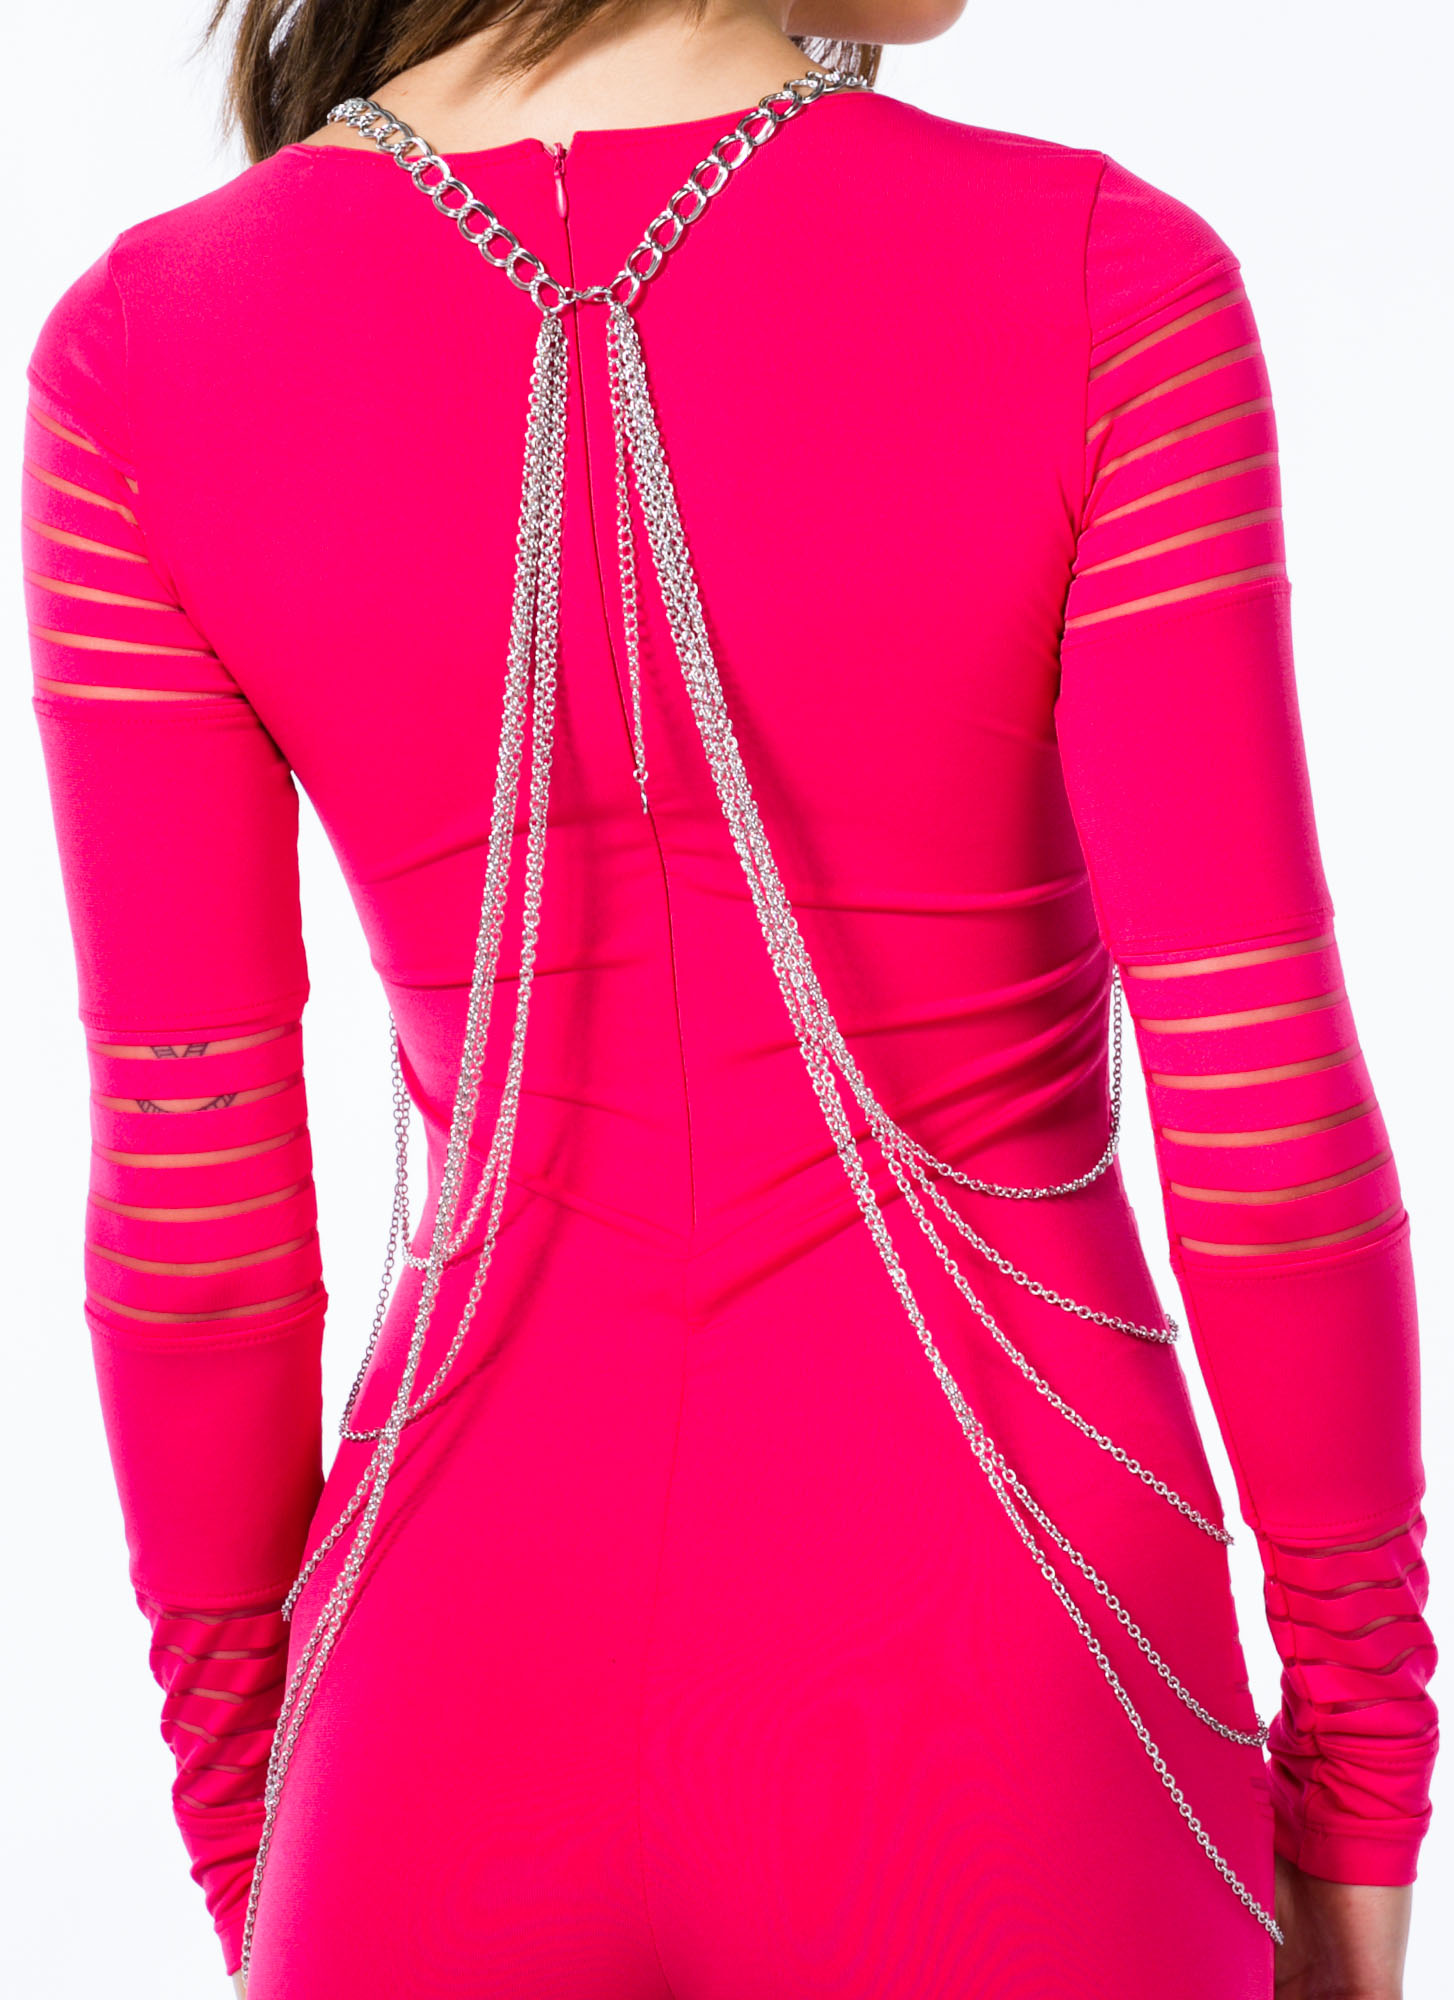 Double Link Draped Body Chain SILVER